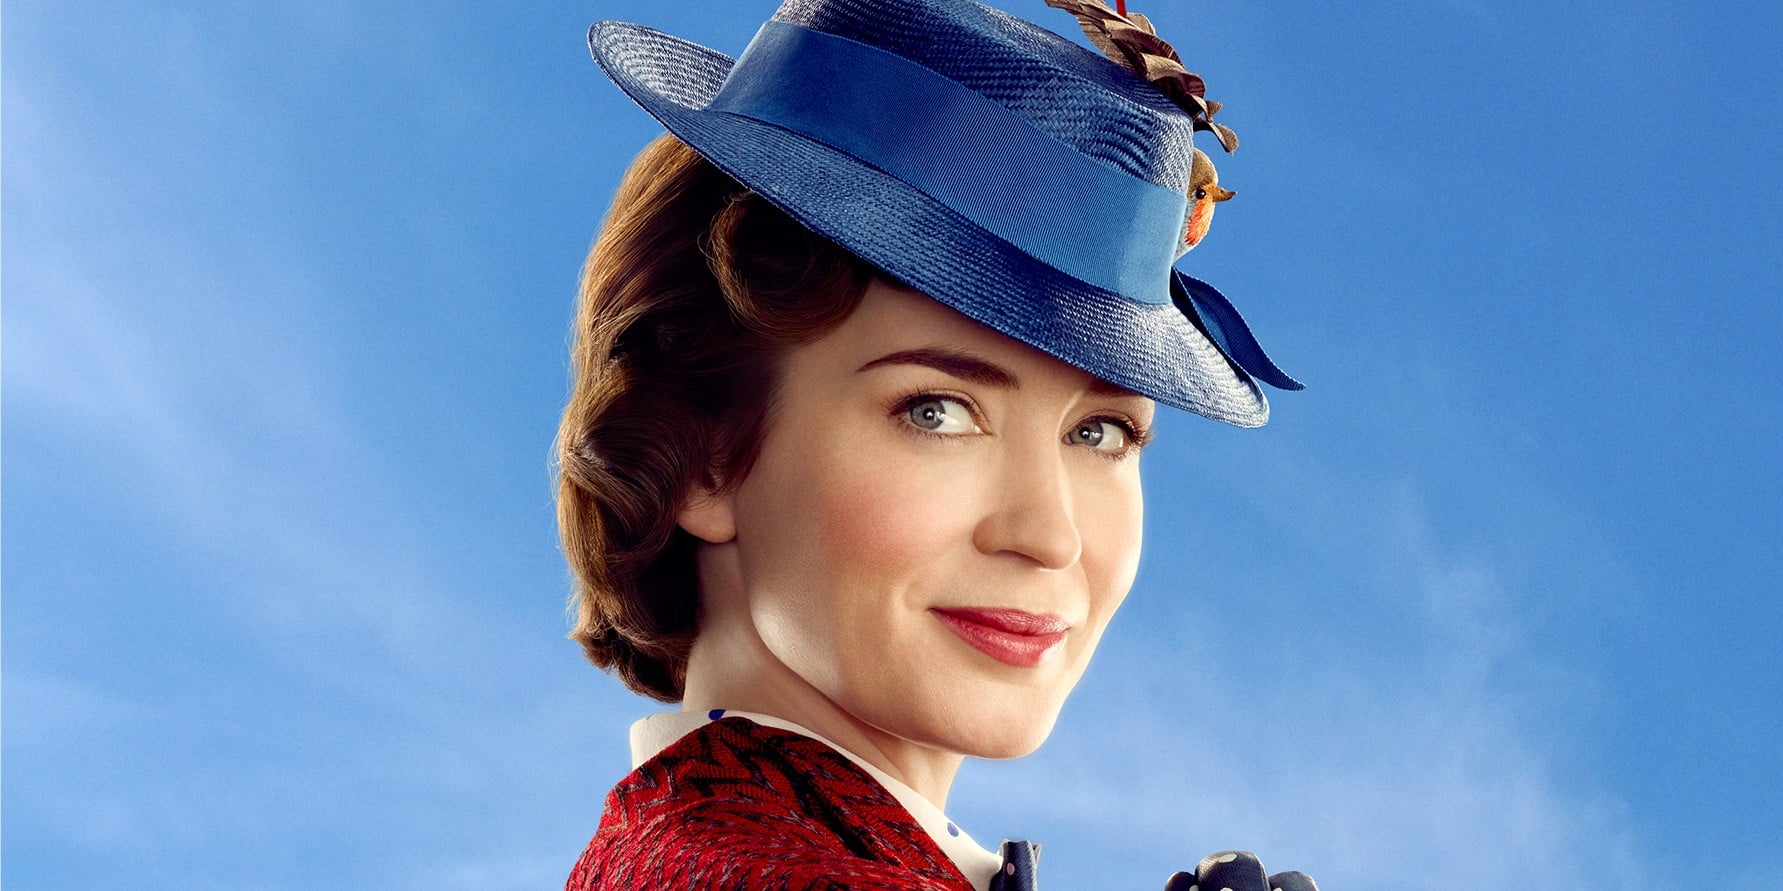 Photos of Emily Blunt as Mary Poppins for Disney sequel